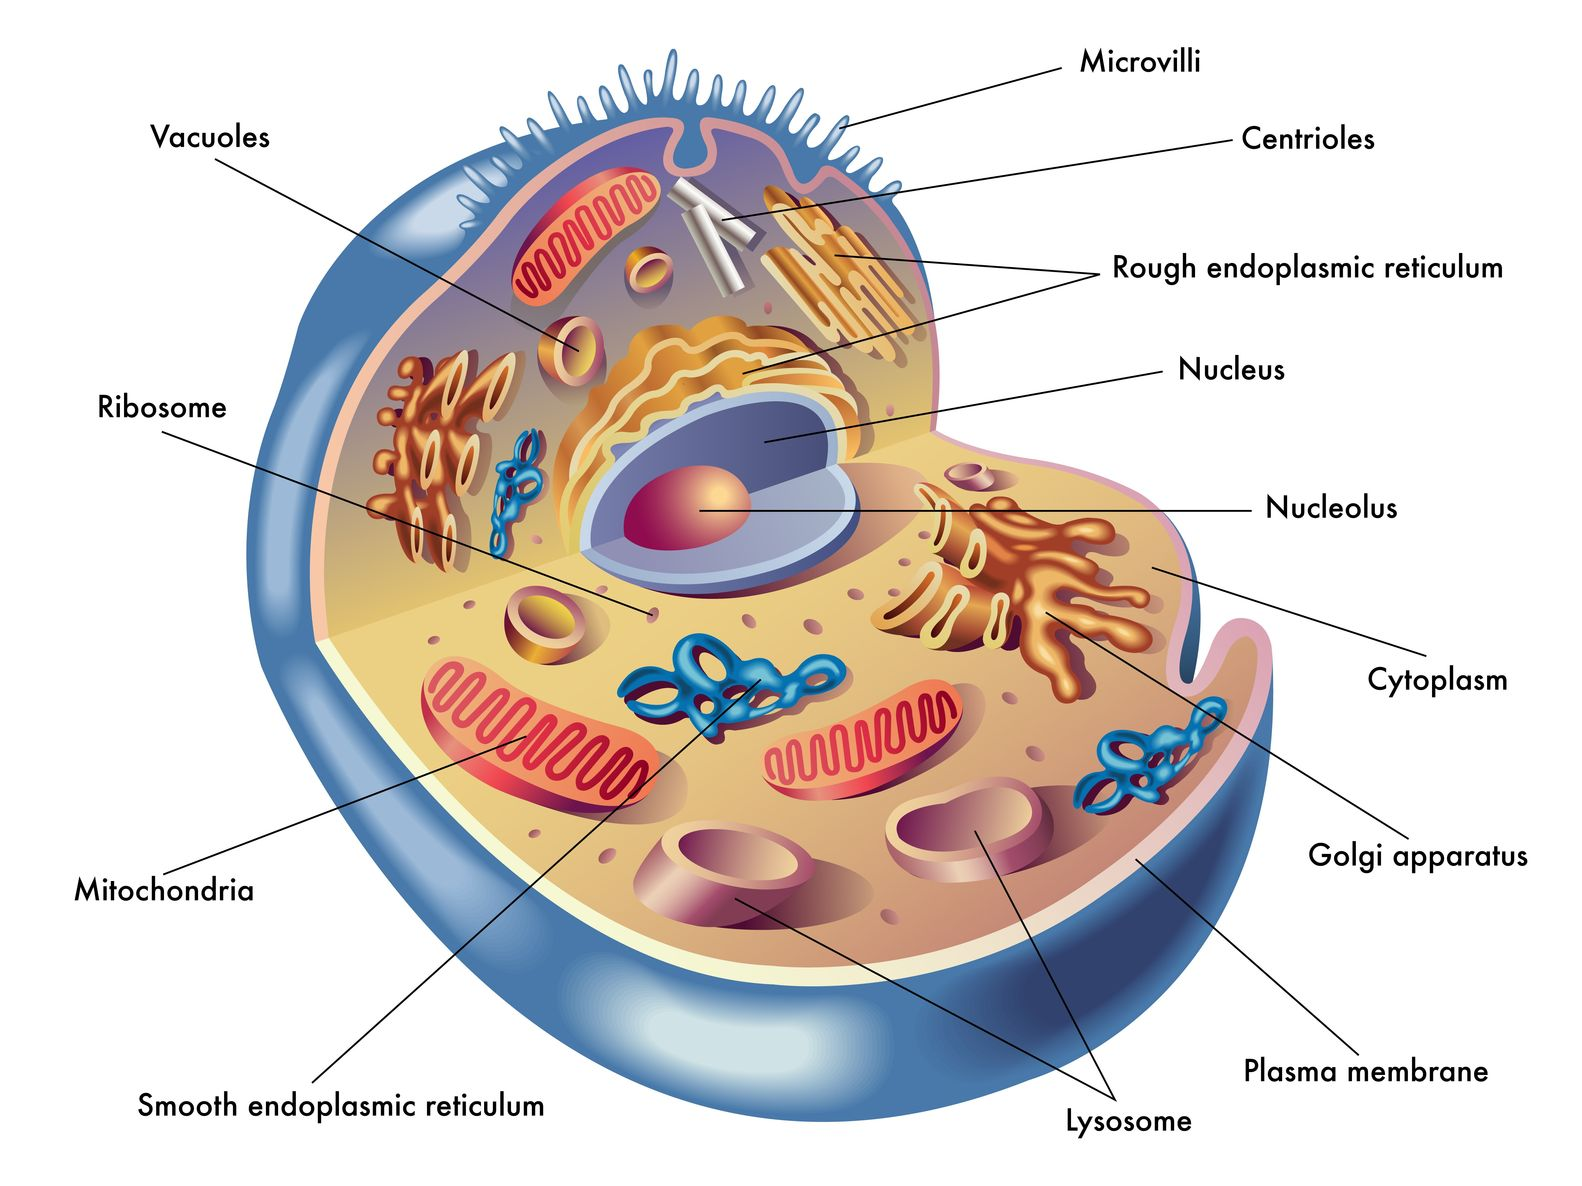 Anatomy & Physiology of the Cell | Massage School Berks Anatomy ...